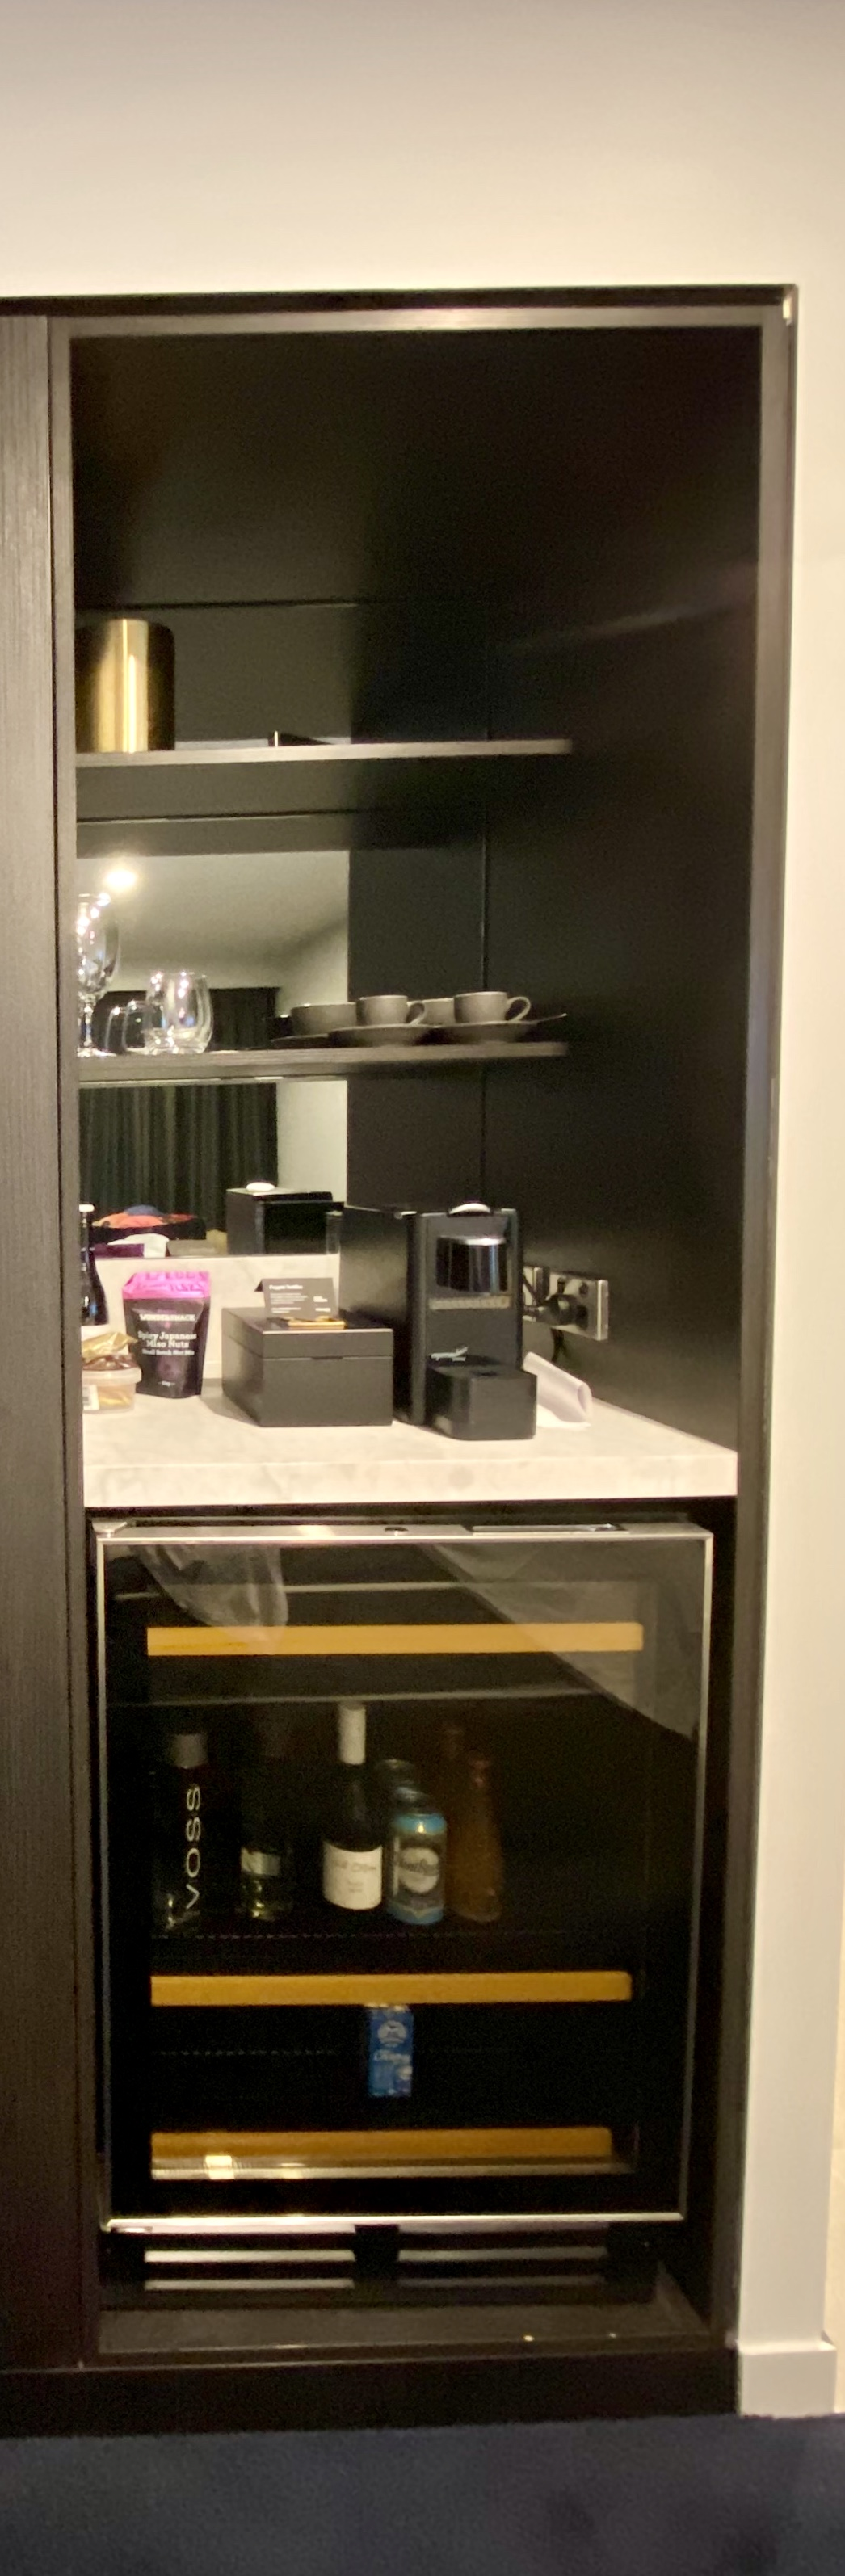 In-room mini bar and fridge, Midnight Hotel Canbberra